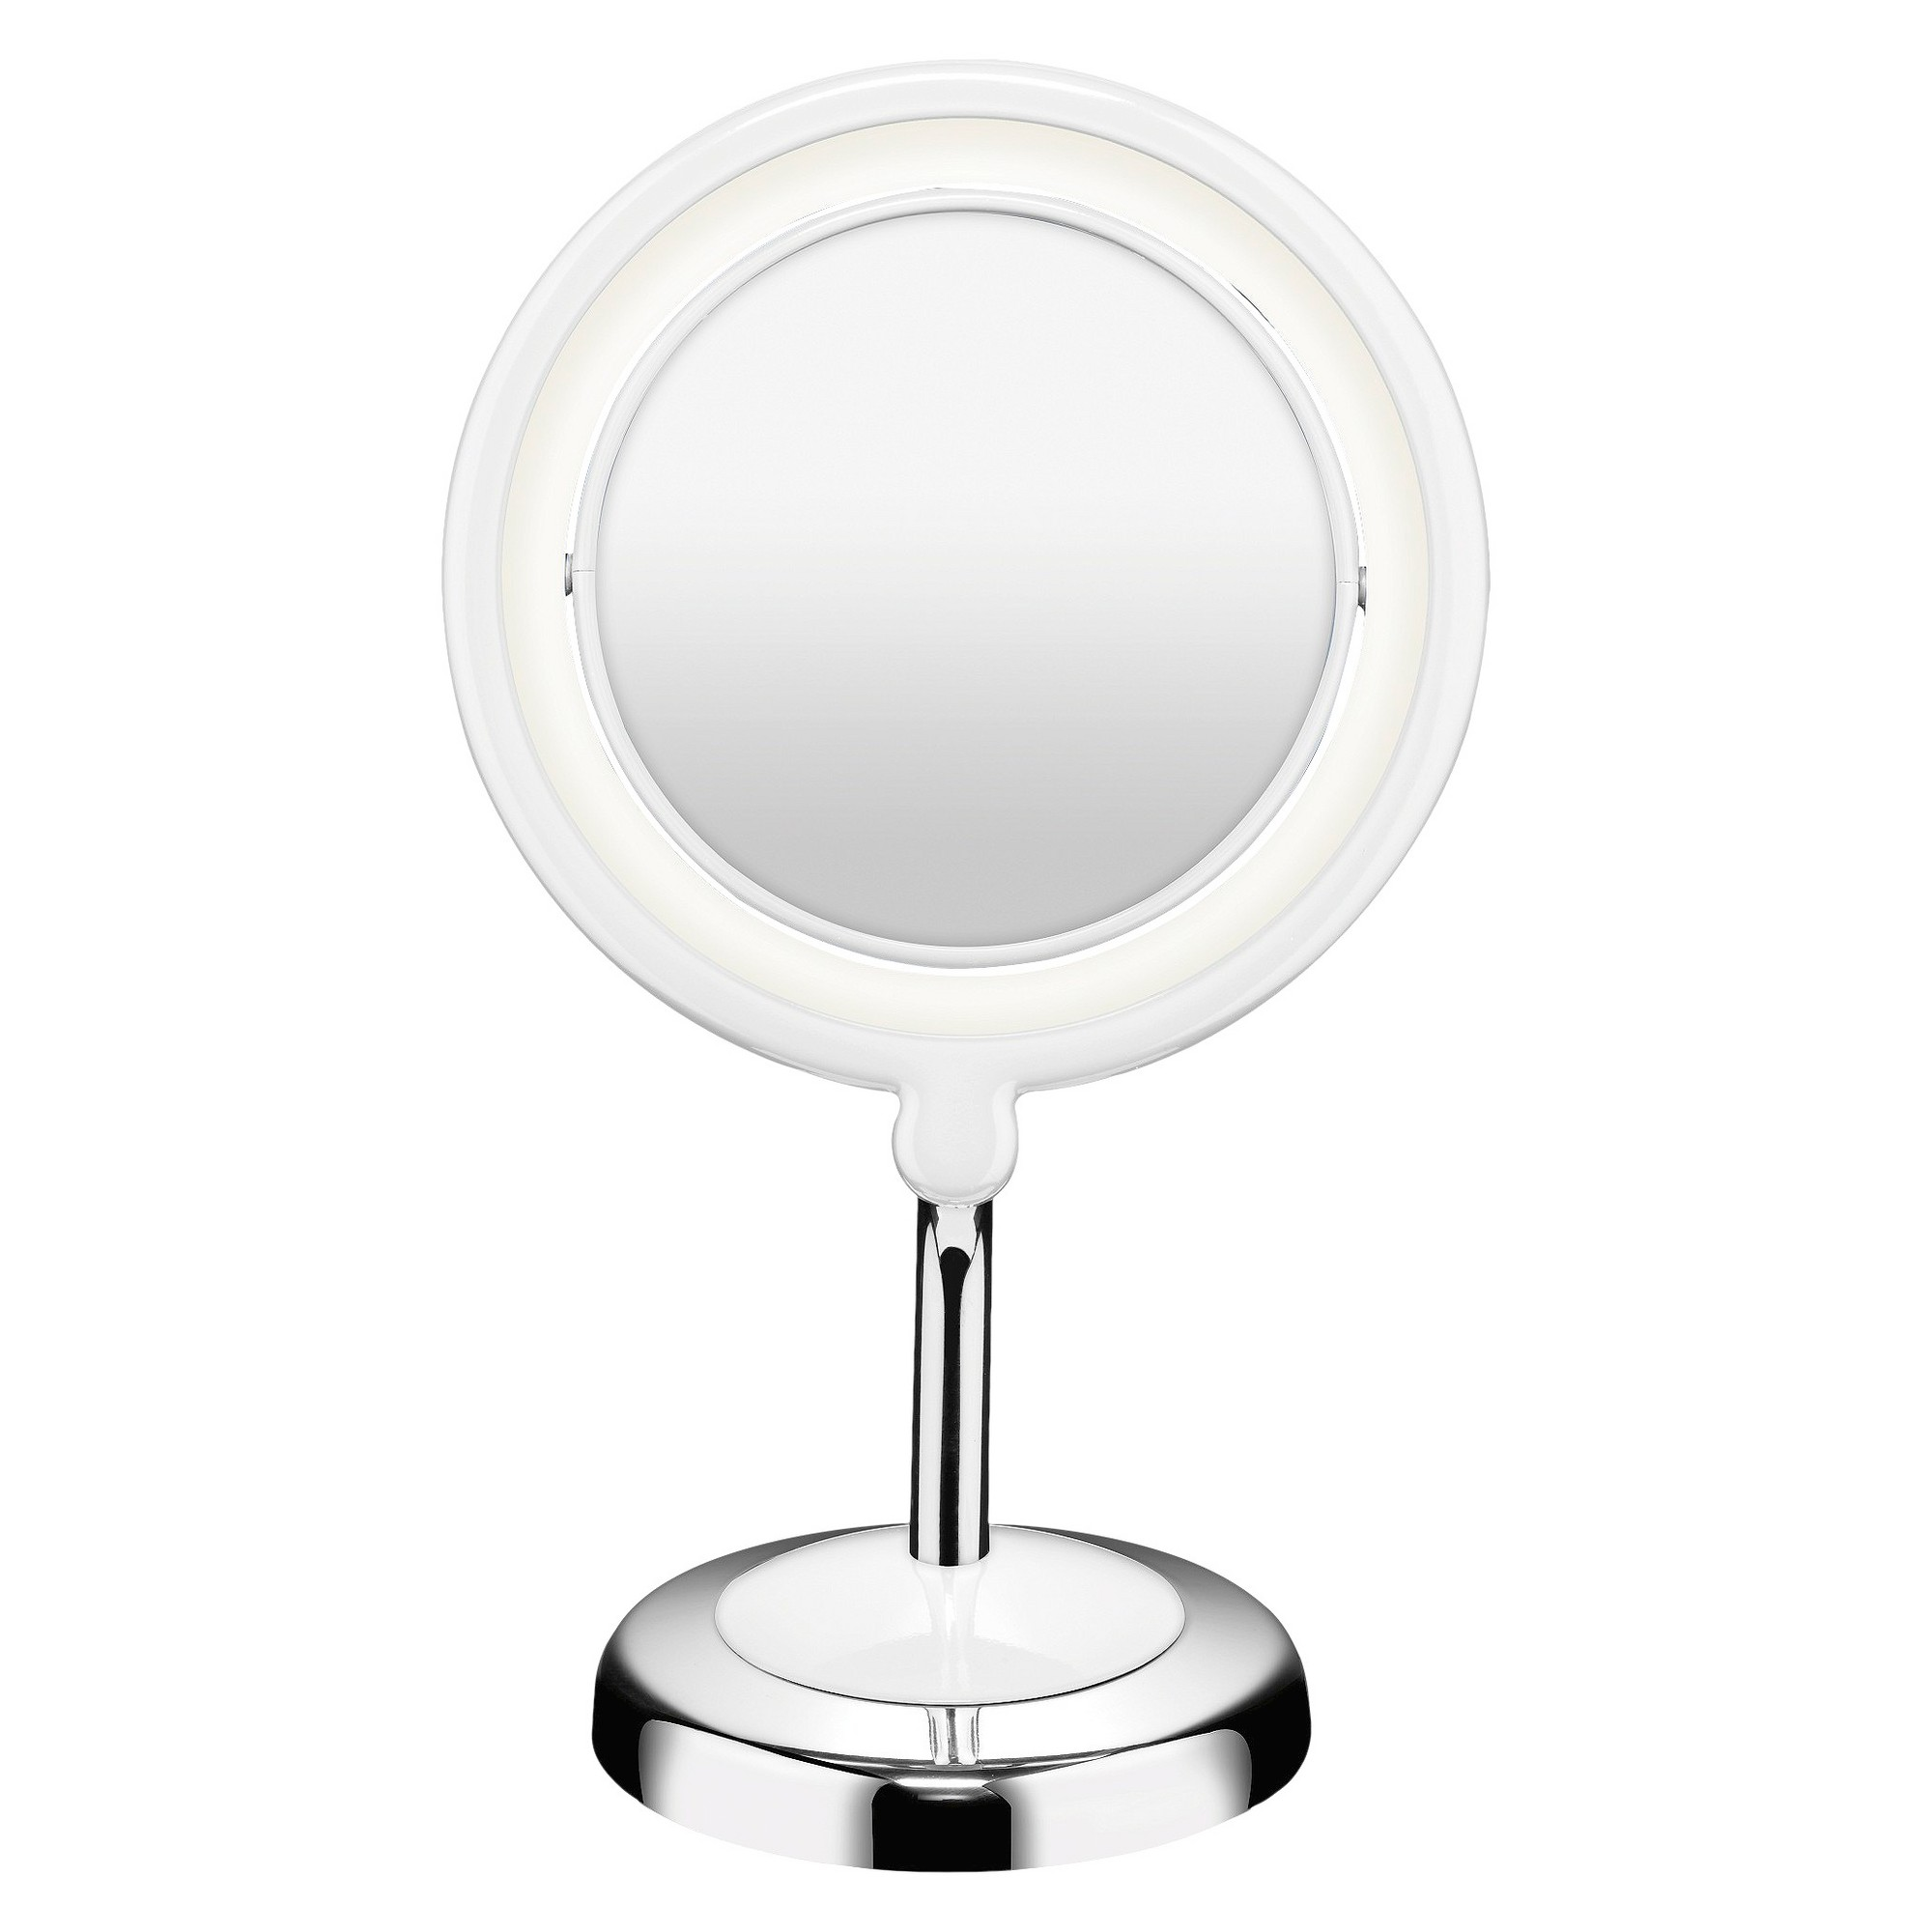 Conair Adjustable Cosmetic Mirror In 2019 Products Makeup